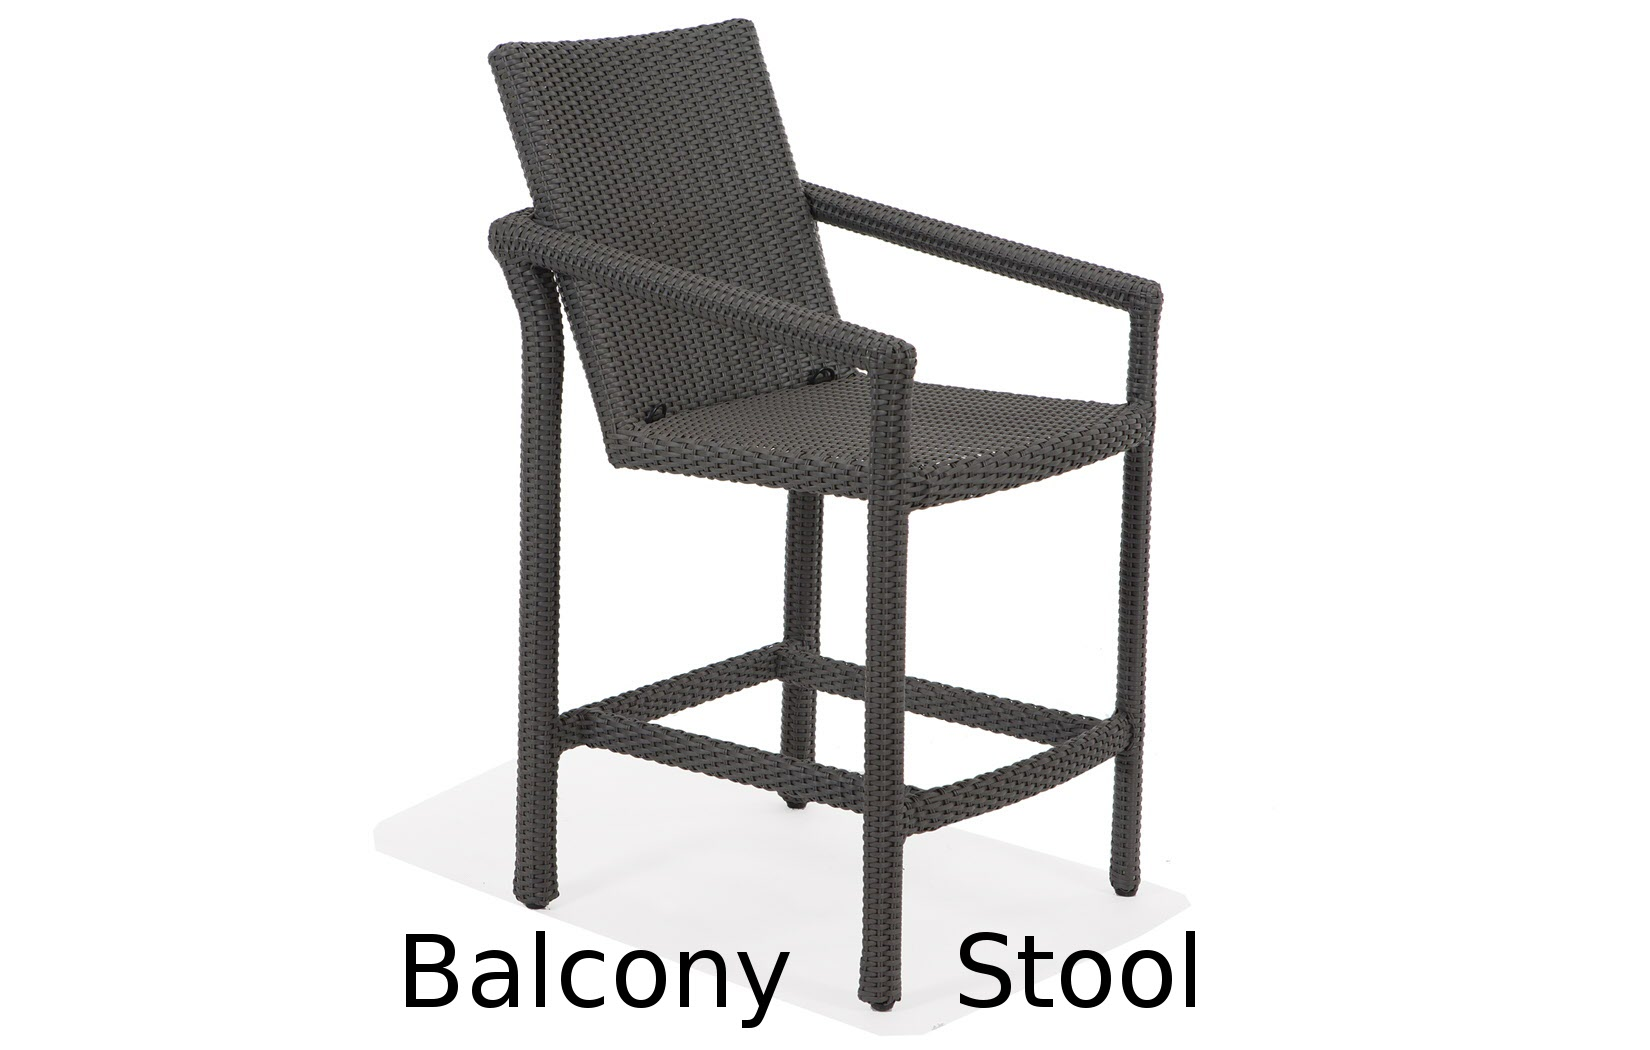 M75014B  Lantana Collection Balcony Stool